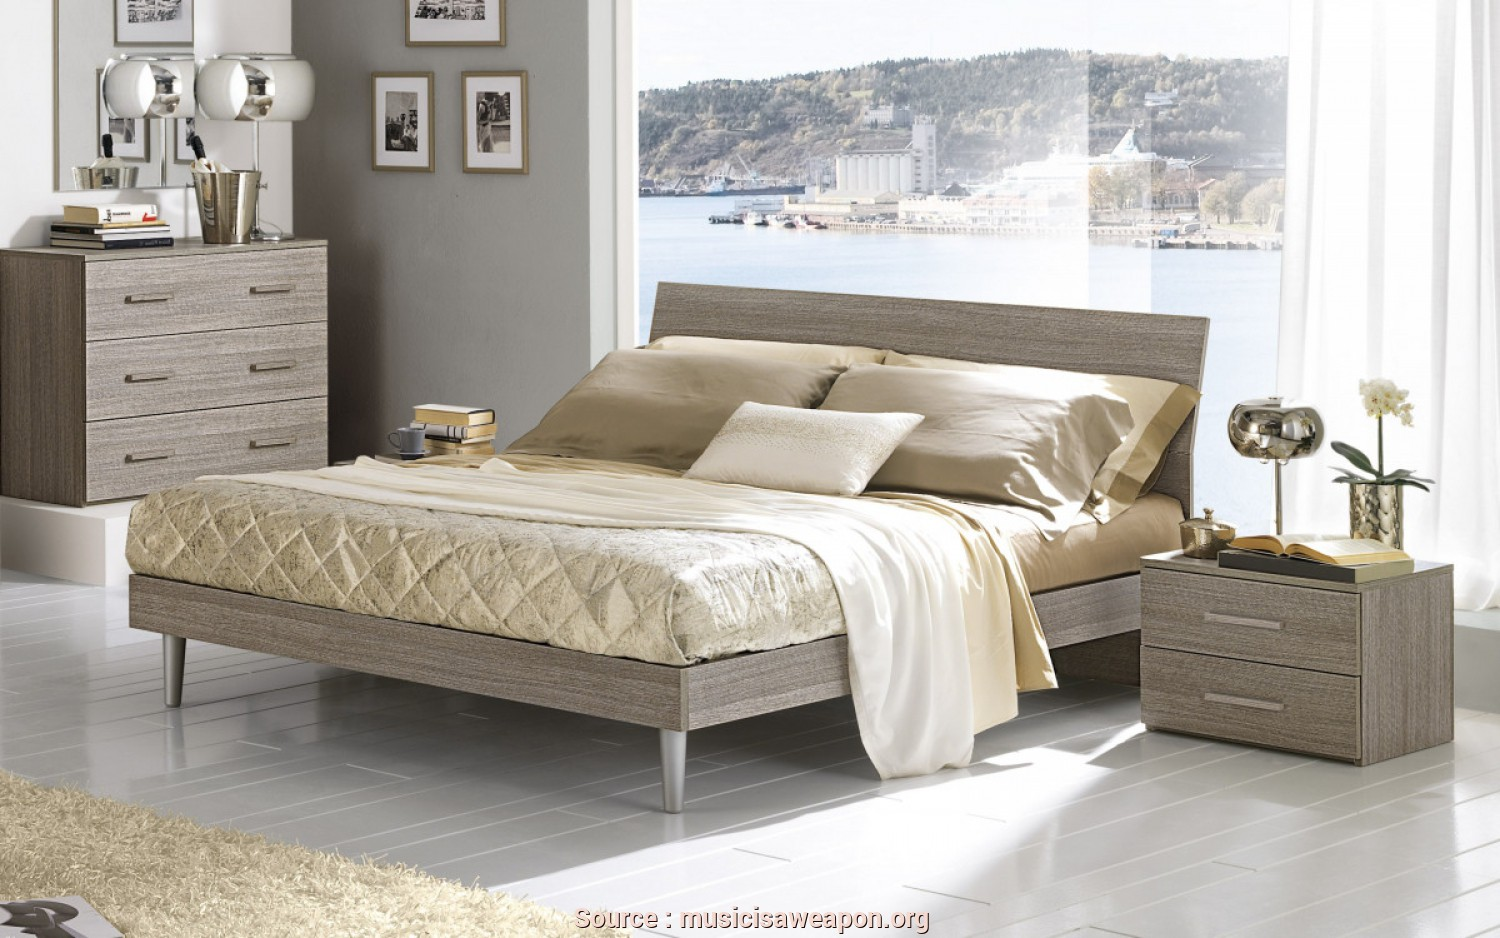 Loveable 6 letti alla francese mondo convenienza jake for Letto matrimoniale contenitore mondo convenienza